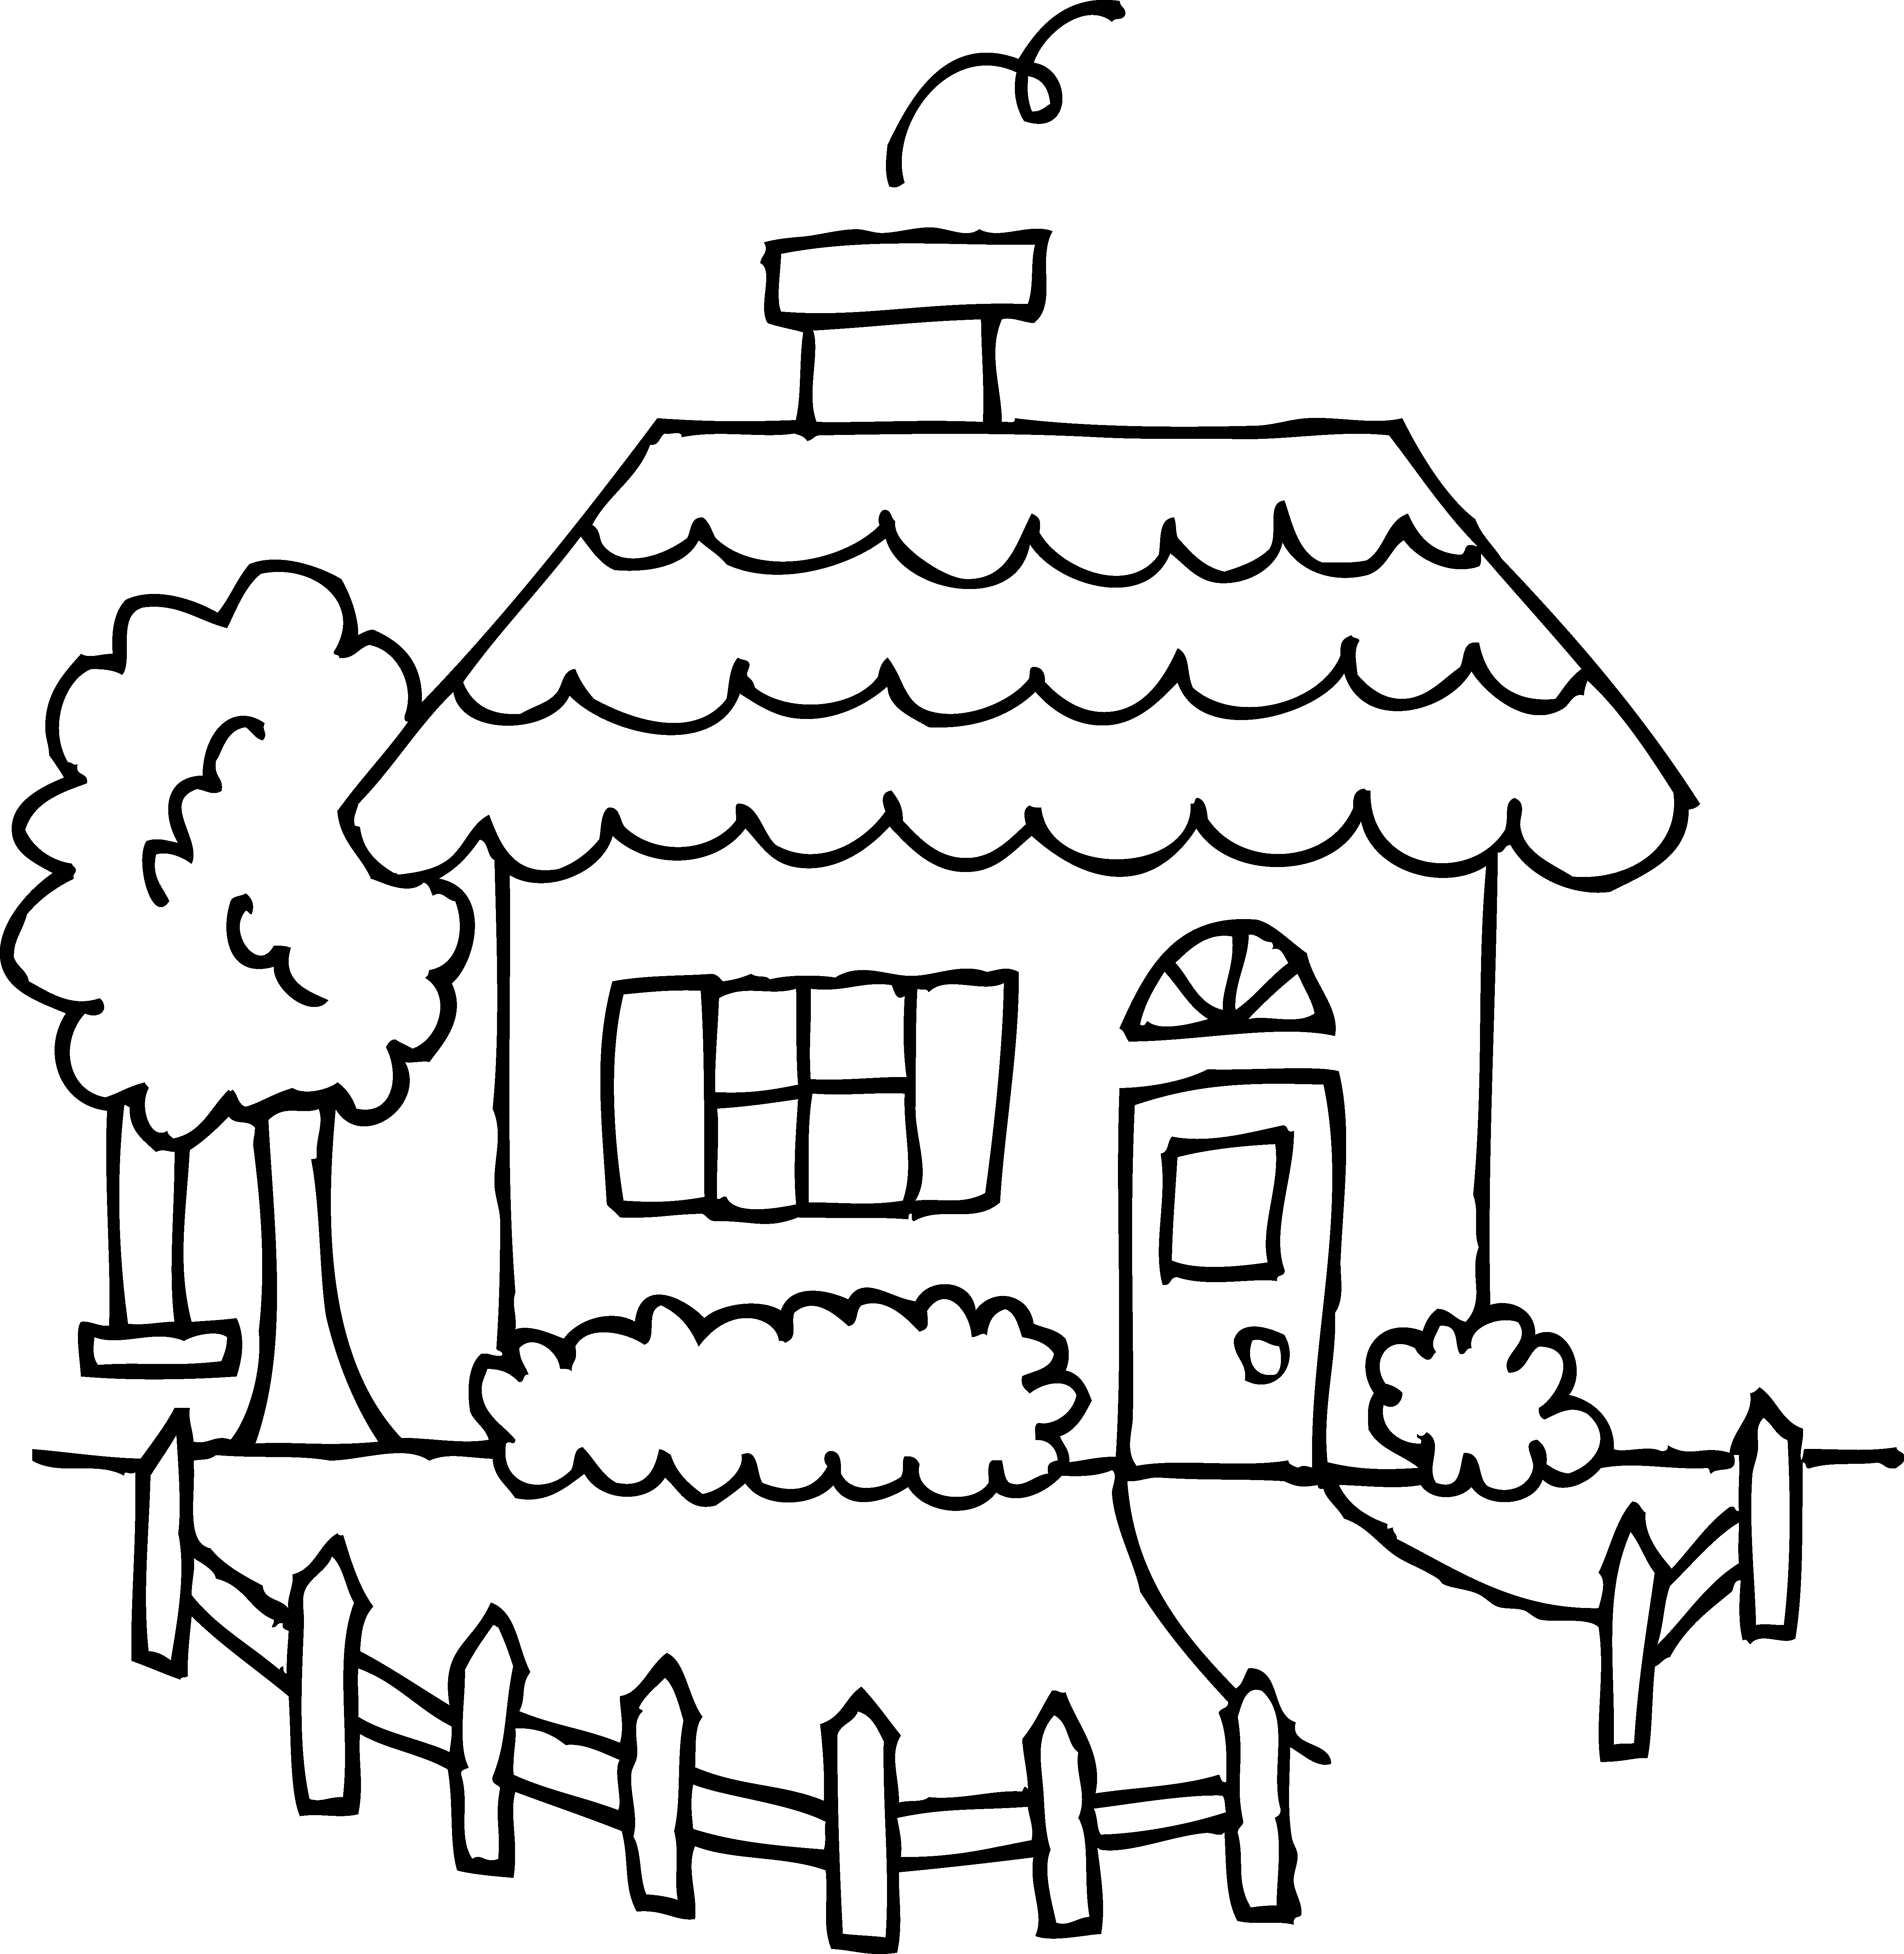 Home black and white clipart clip freeuse stock House clip art black and white - Clip Art Library clip freeuse stock